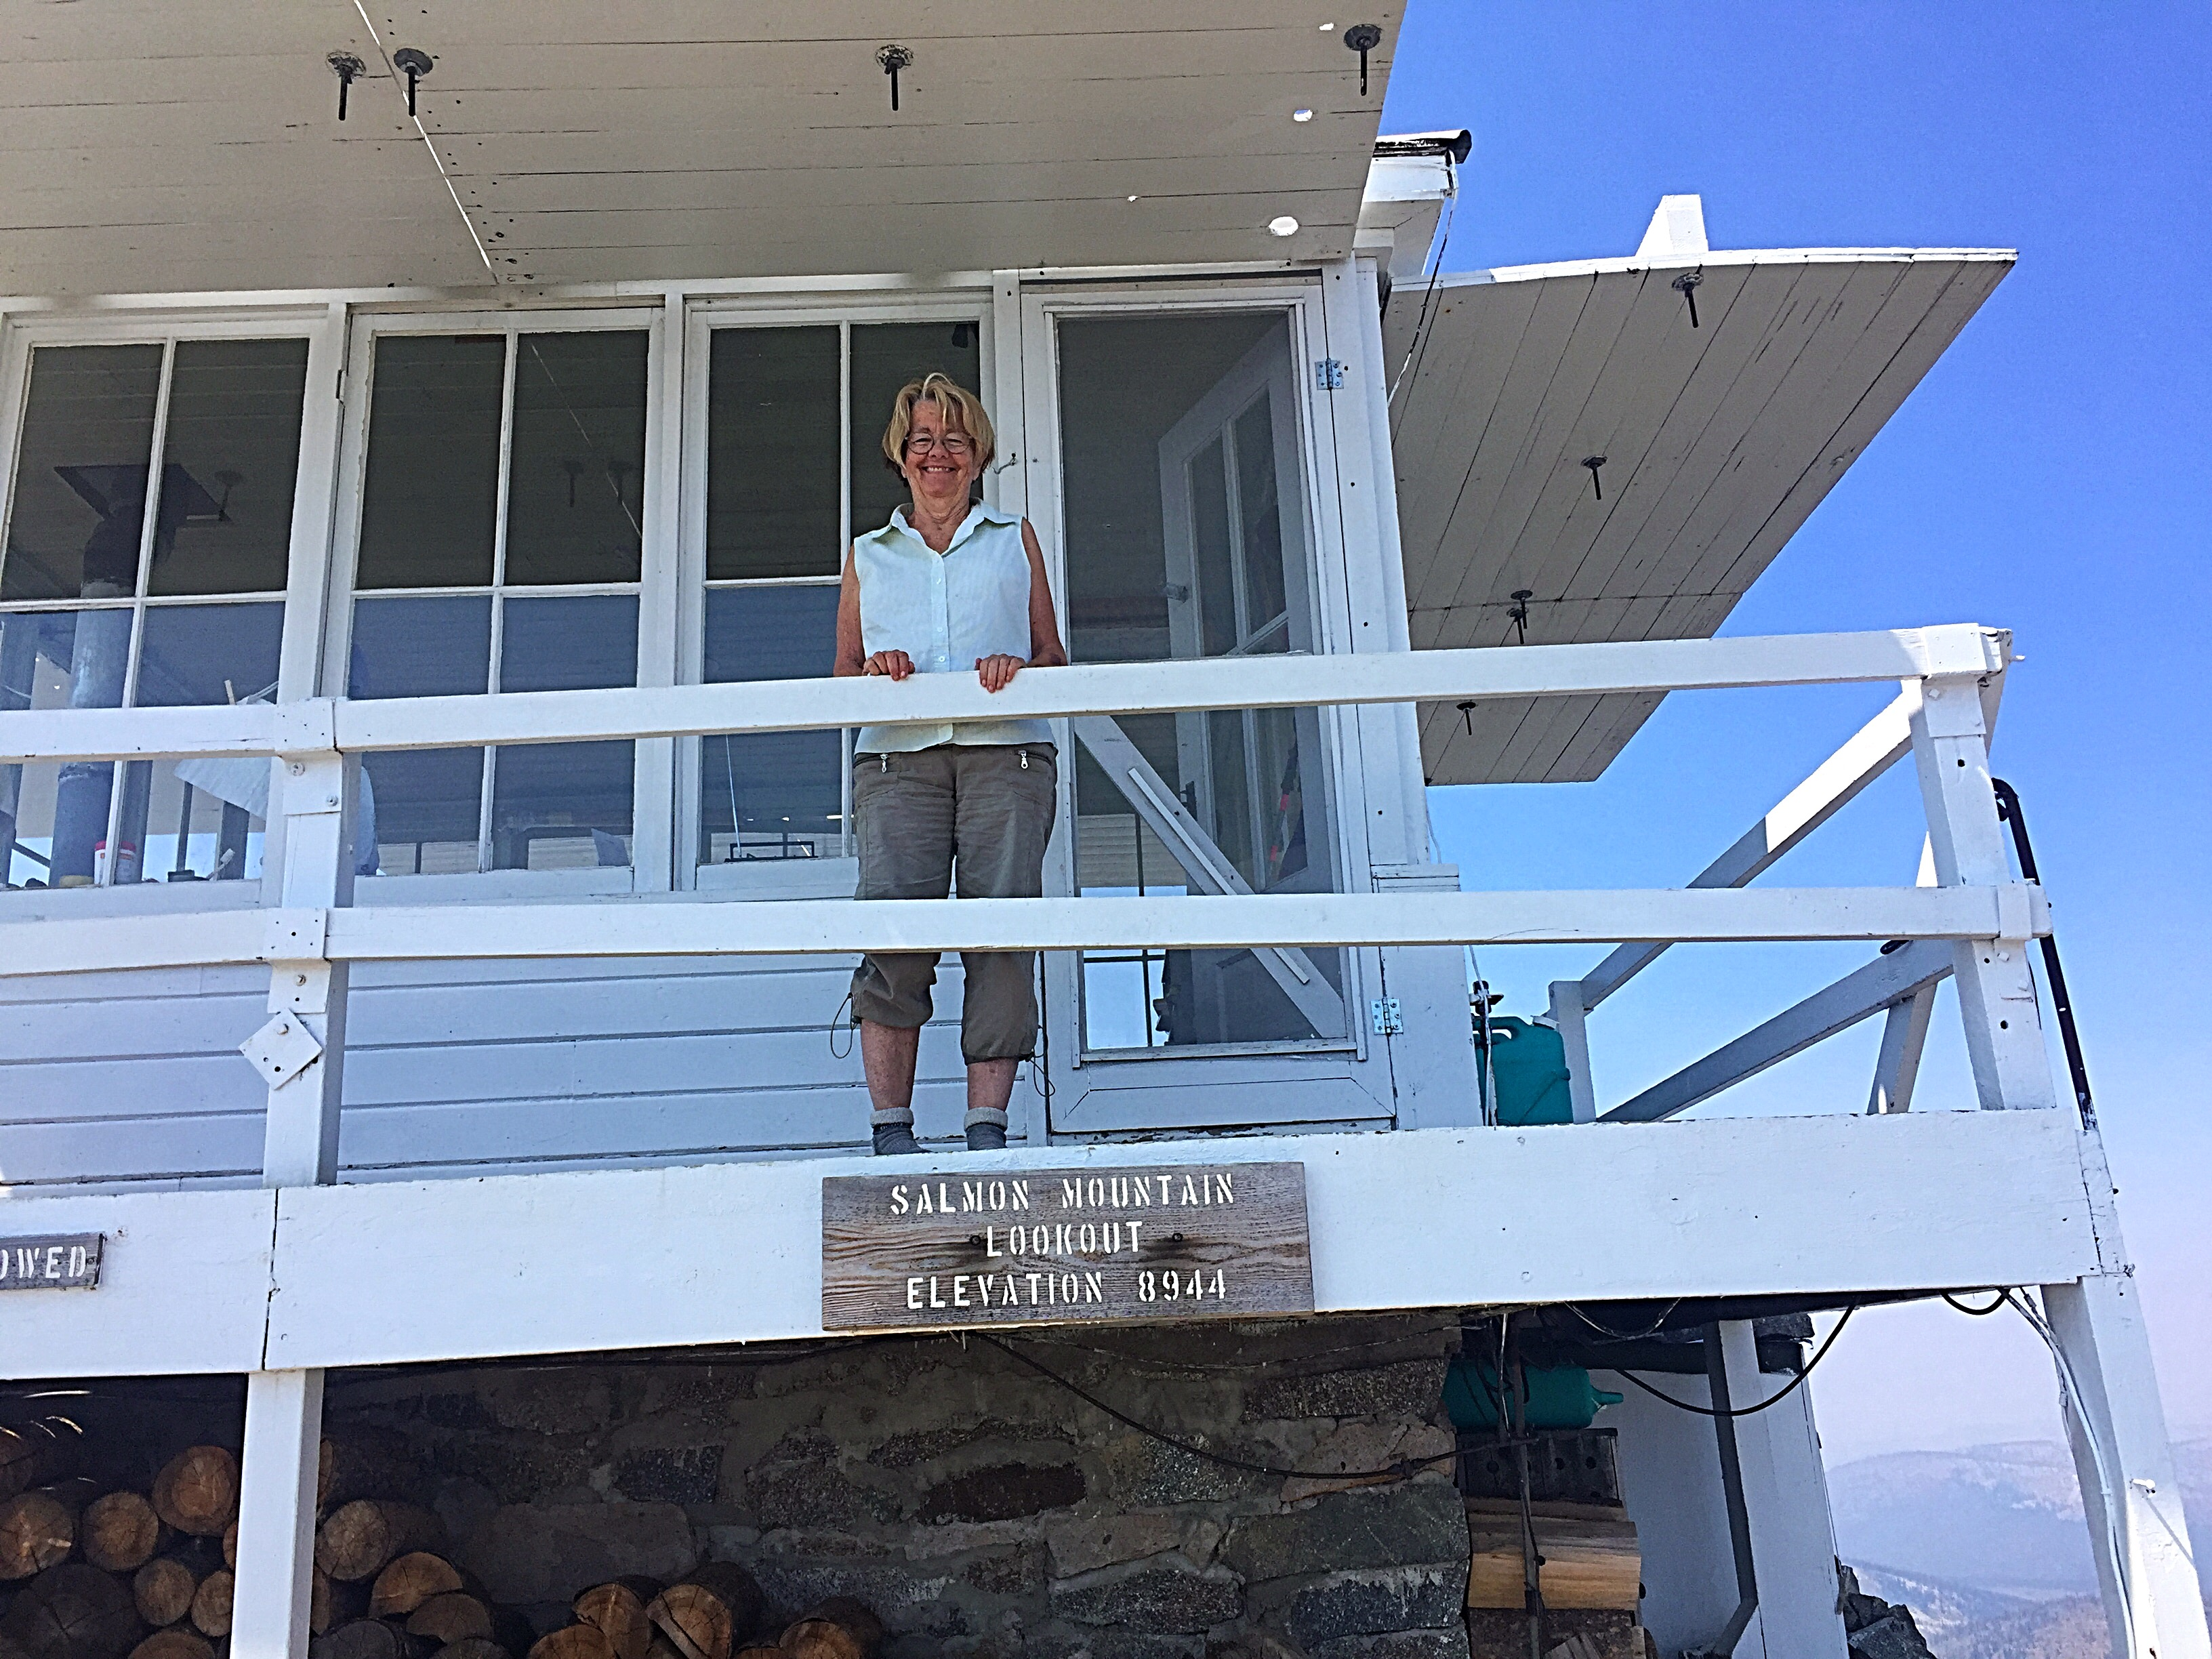 The lookout is manned by a team of volunteers. Susan was the volunteer on duty when I arrived. She has tak en turns on the mountain since 1985.